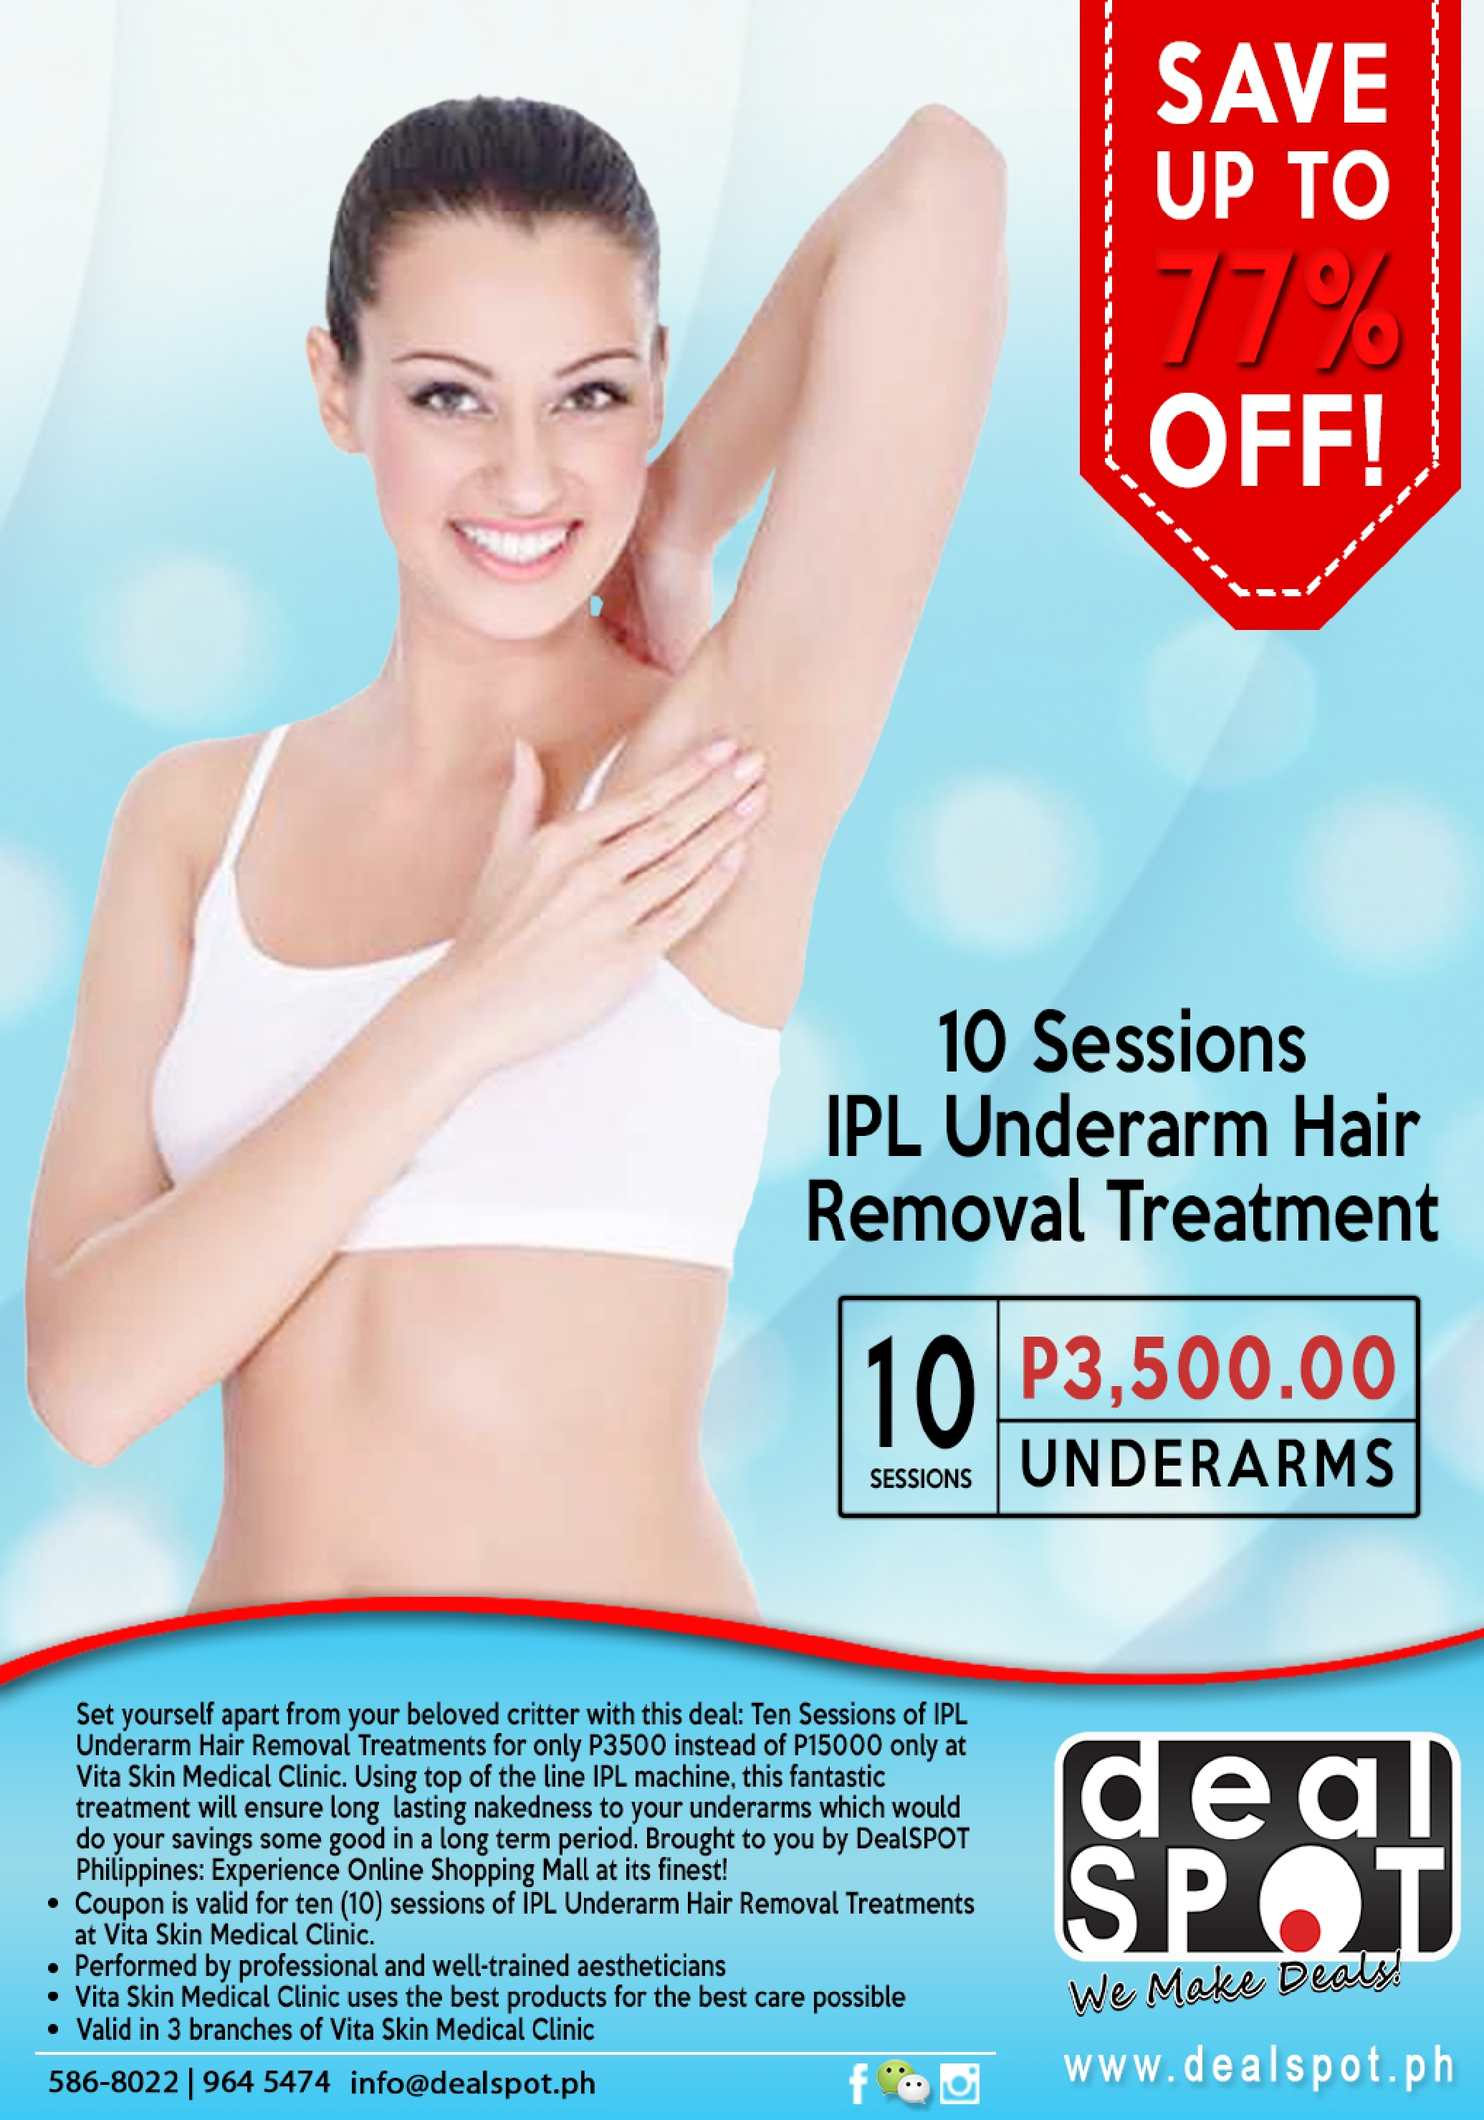 Calaméo - Save 77 Off On 10 Sessions Ipl Underarm Hair